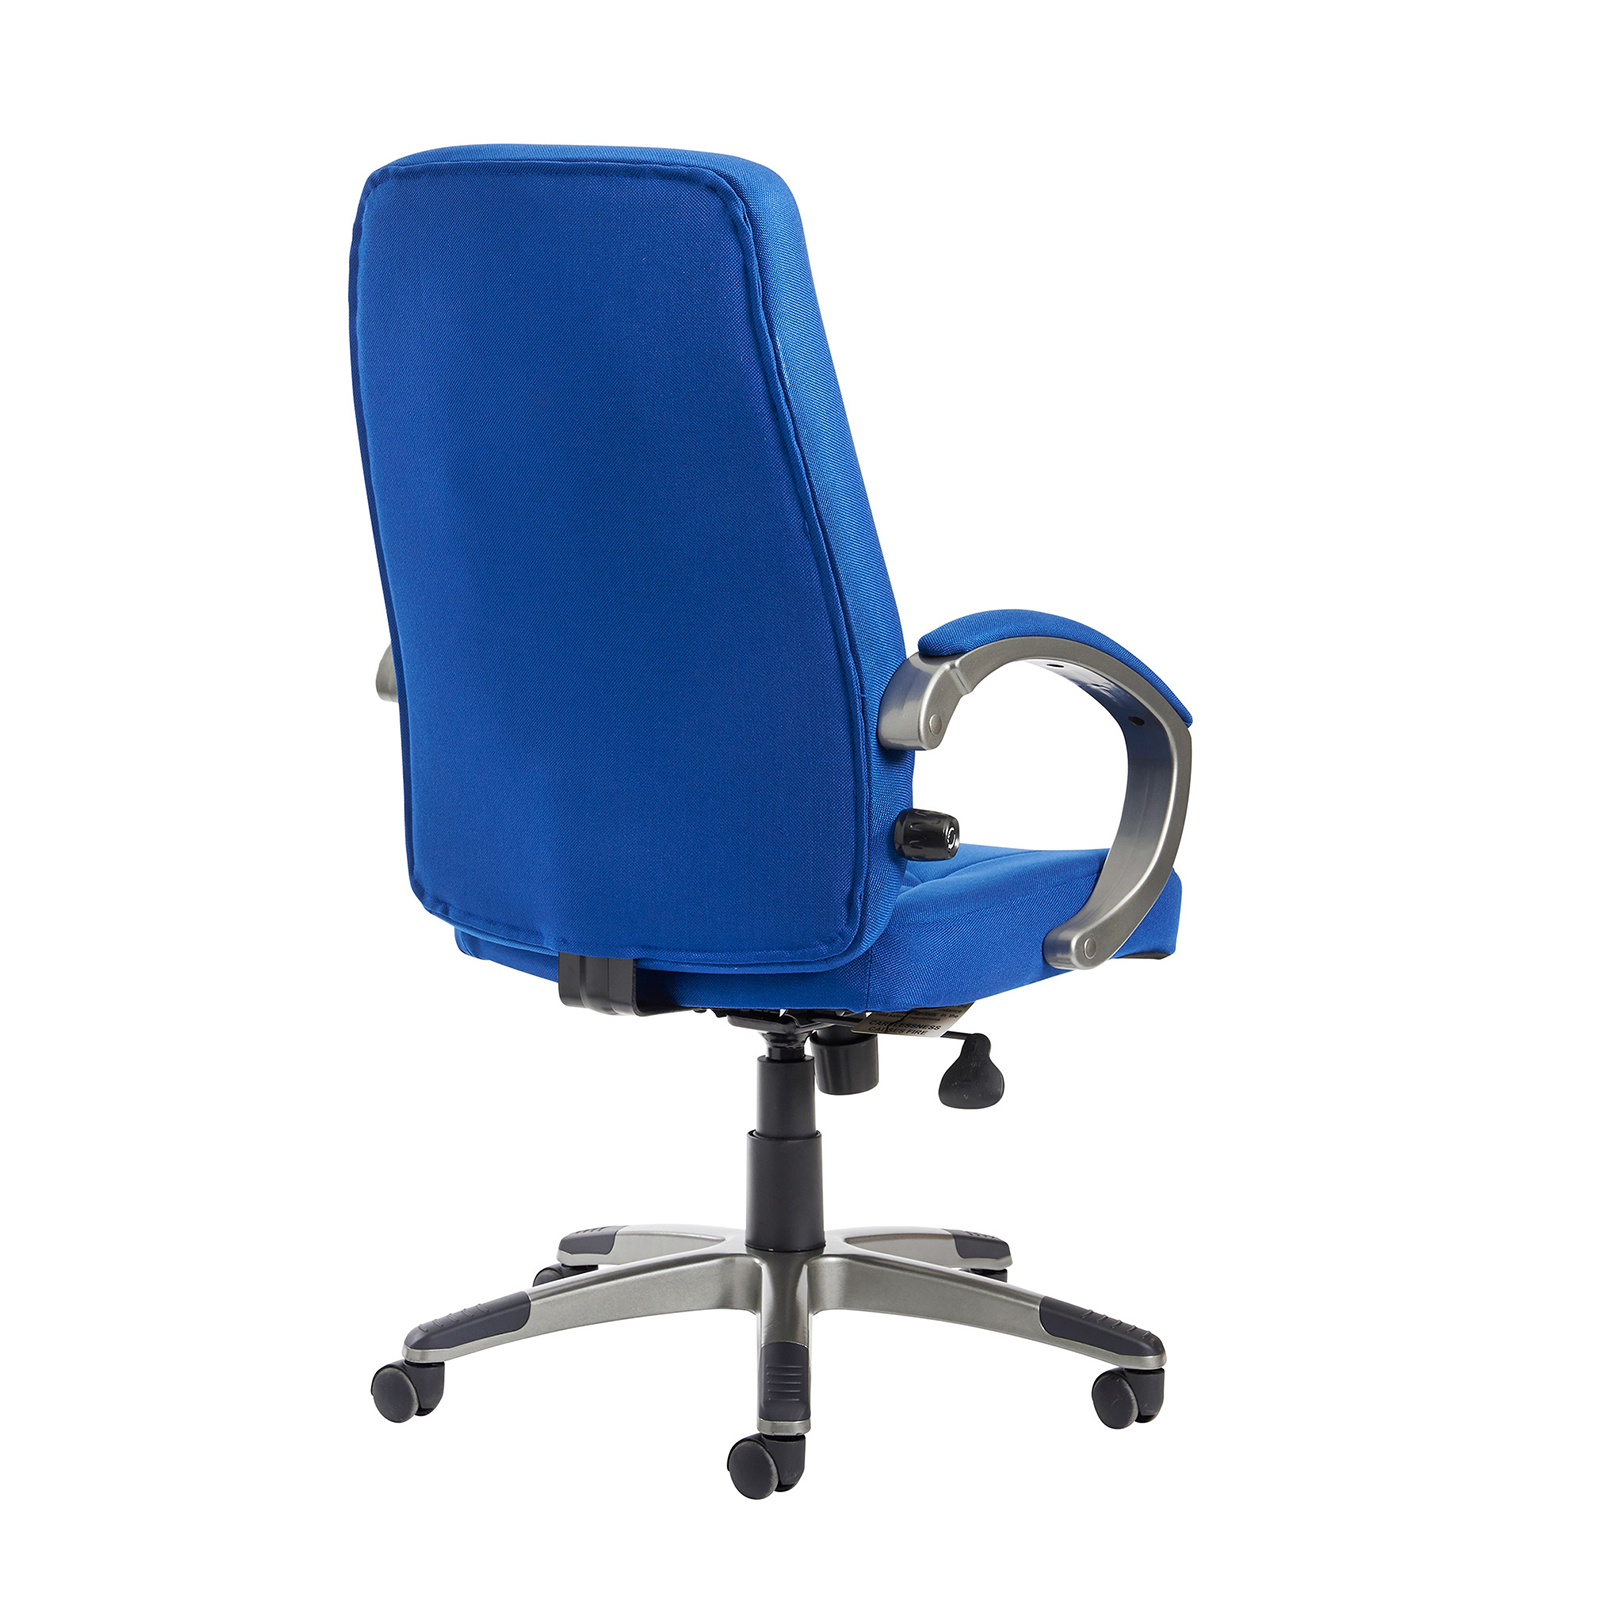 Lucca high back fabric managers chair - blue